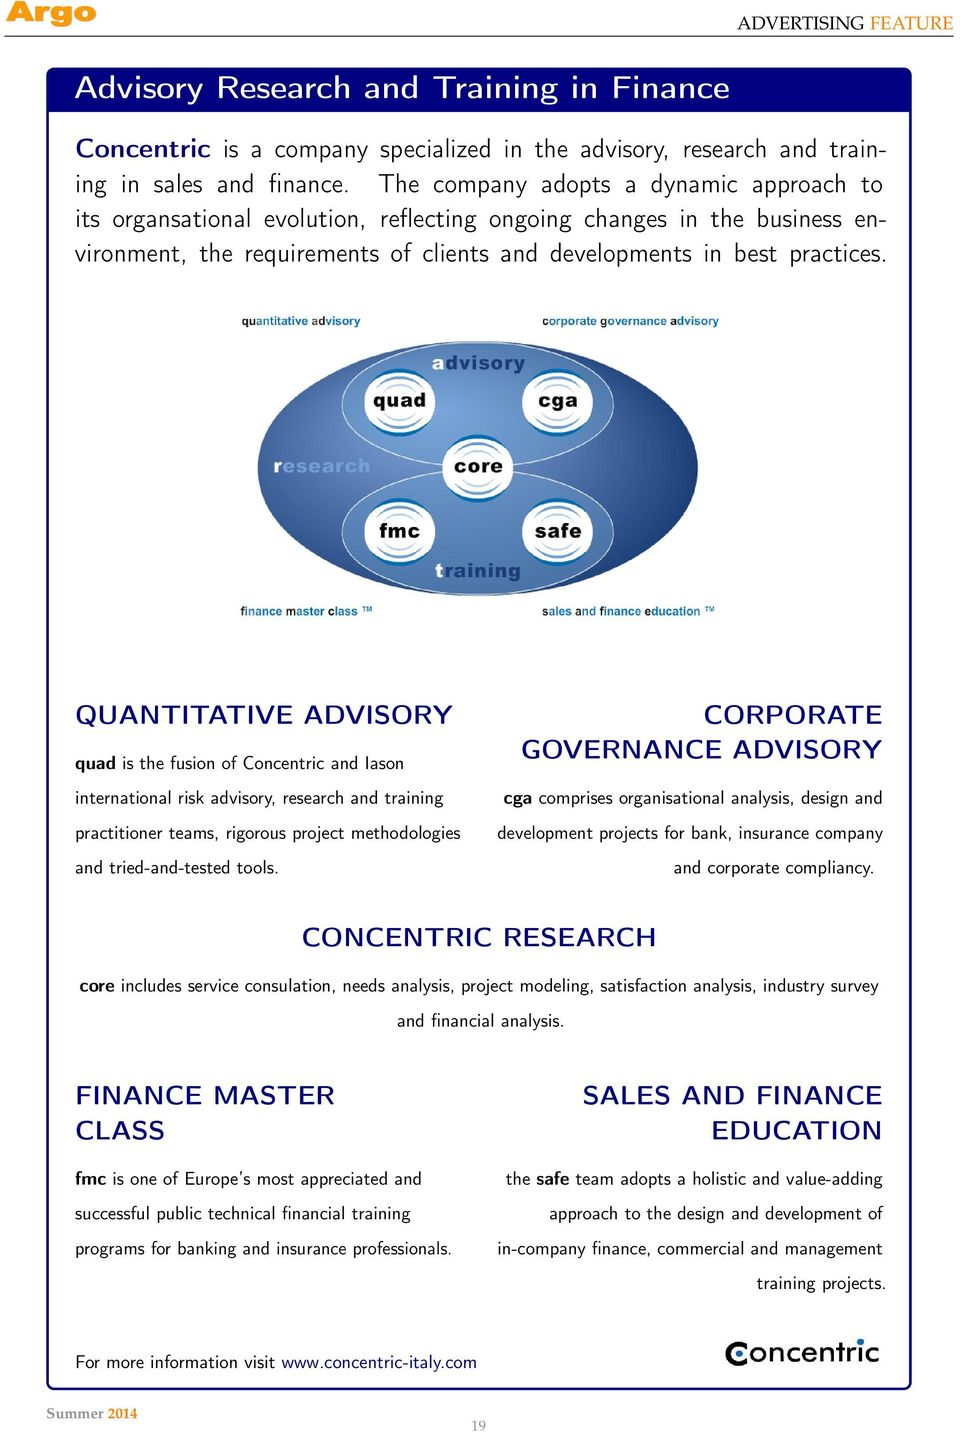 QUANTITATIVE ADVISORY quad is the fusion of Concentric and Iason international risk advisory, research and training practitioner teams, rigorous project methodologies and tried-and-tested tools.